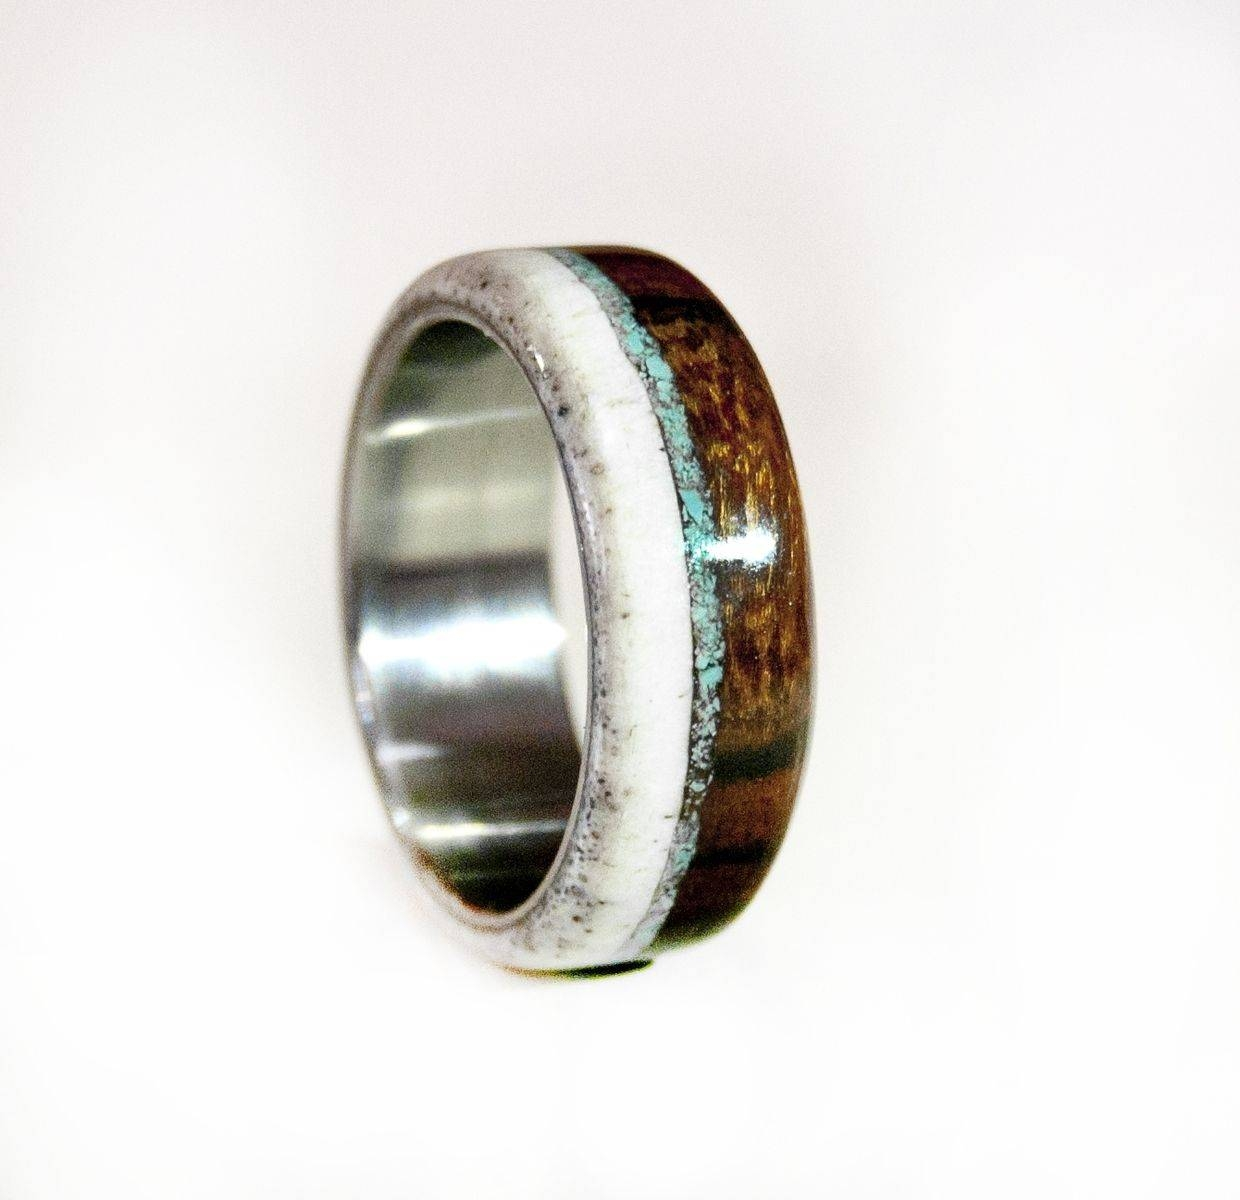 Hand Made Mens Wedding Band Wood And Antler With Turquoise And Throughout Antler Wedding Bands (View 6 of 15)